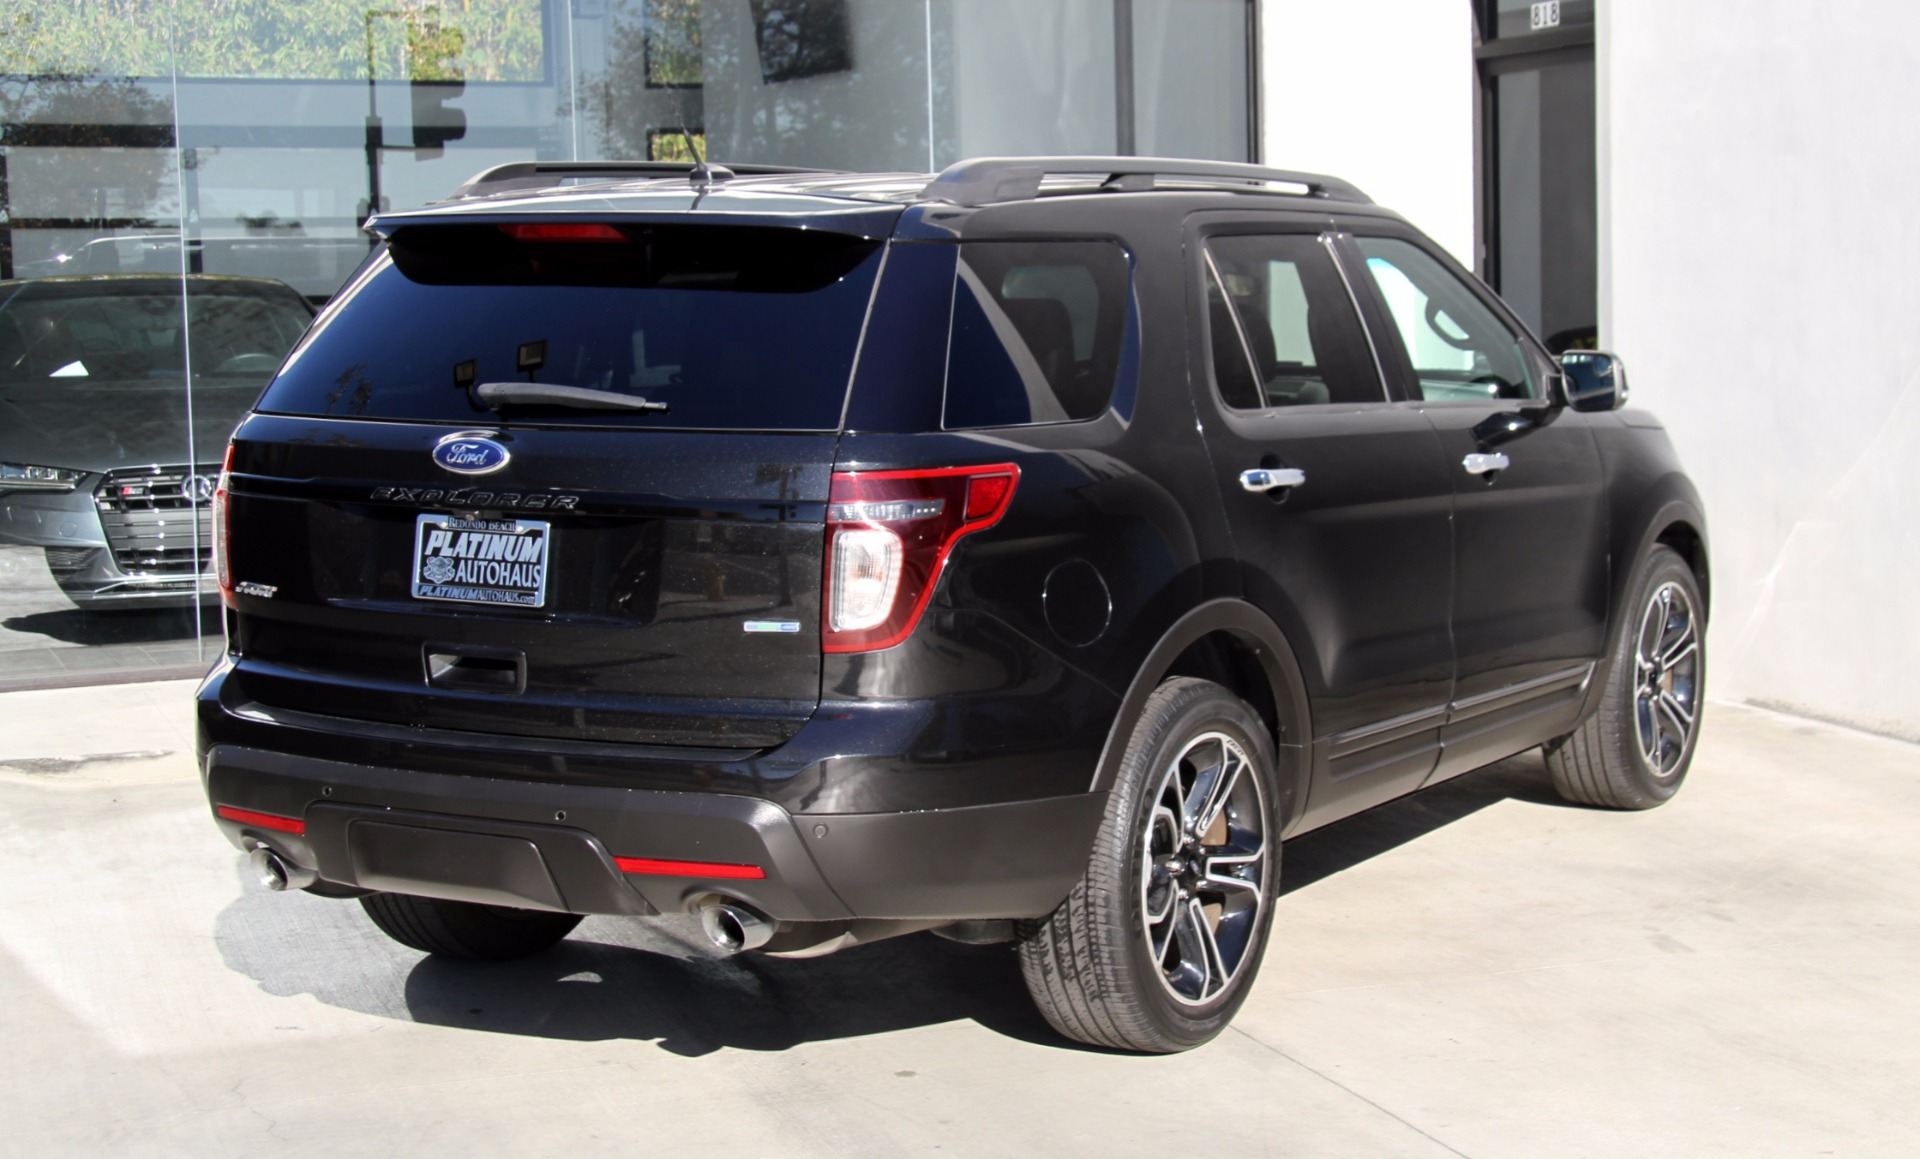 2014 Ford Explorer Sport For Sale >> 2014 Ford Explorer Sport 4WD Stock # 6039A for sale near